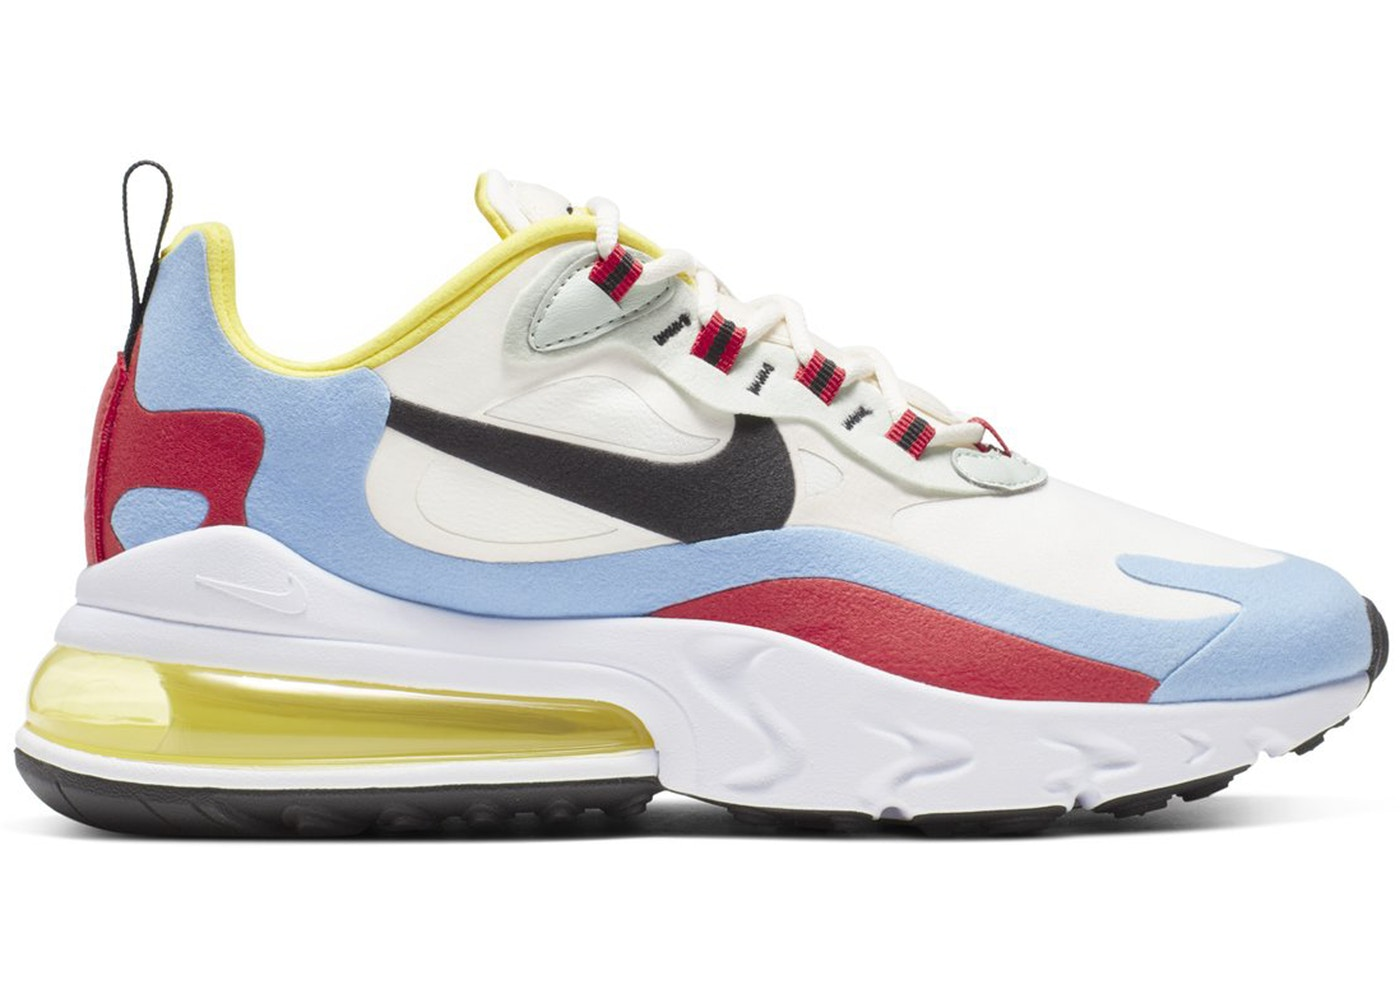 0c33a7d3 Buy Nike Air Max Other Shoes & Deadstock Sneakers